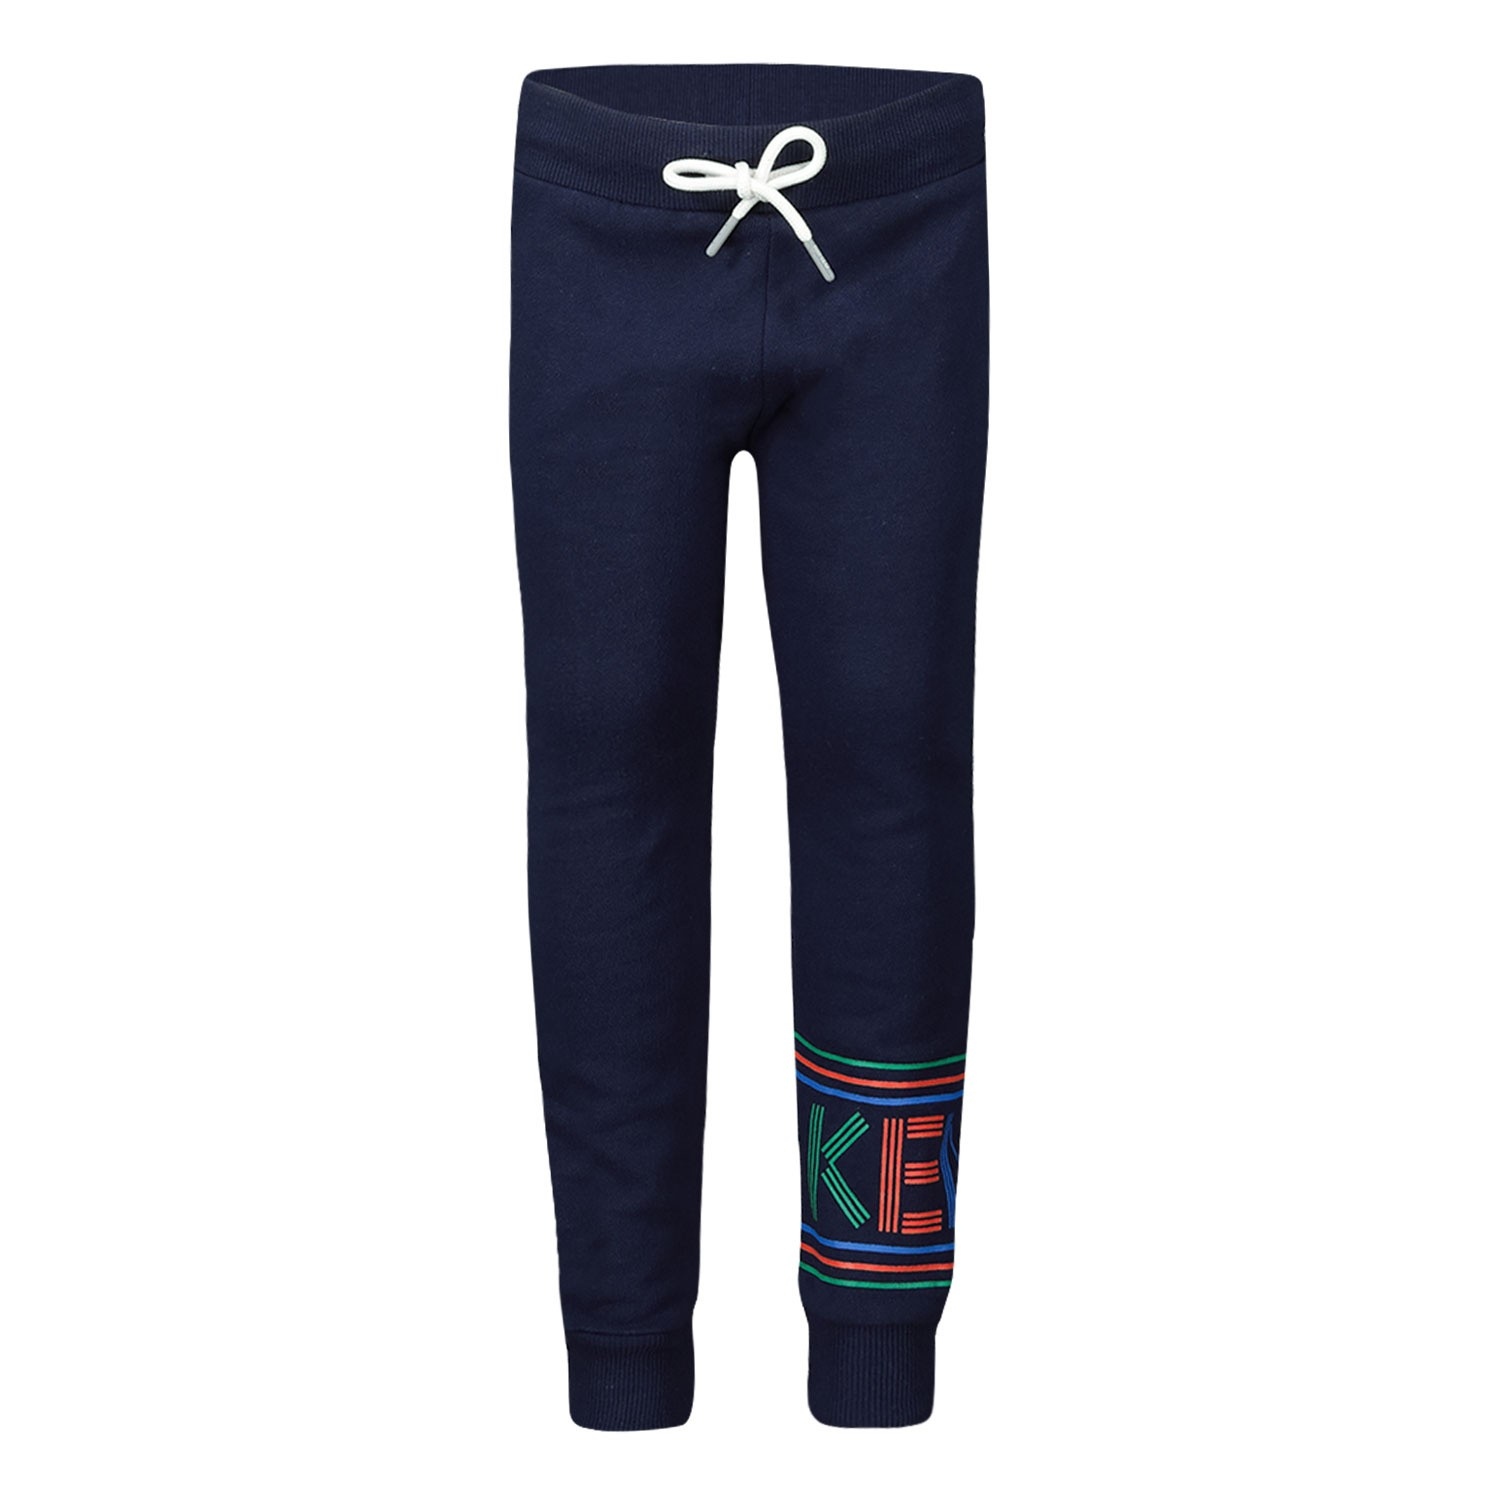 Picture of Kenzo KP23557 baby pants navy